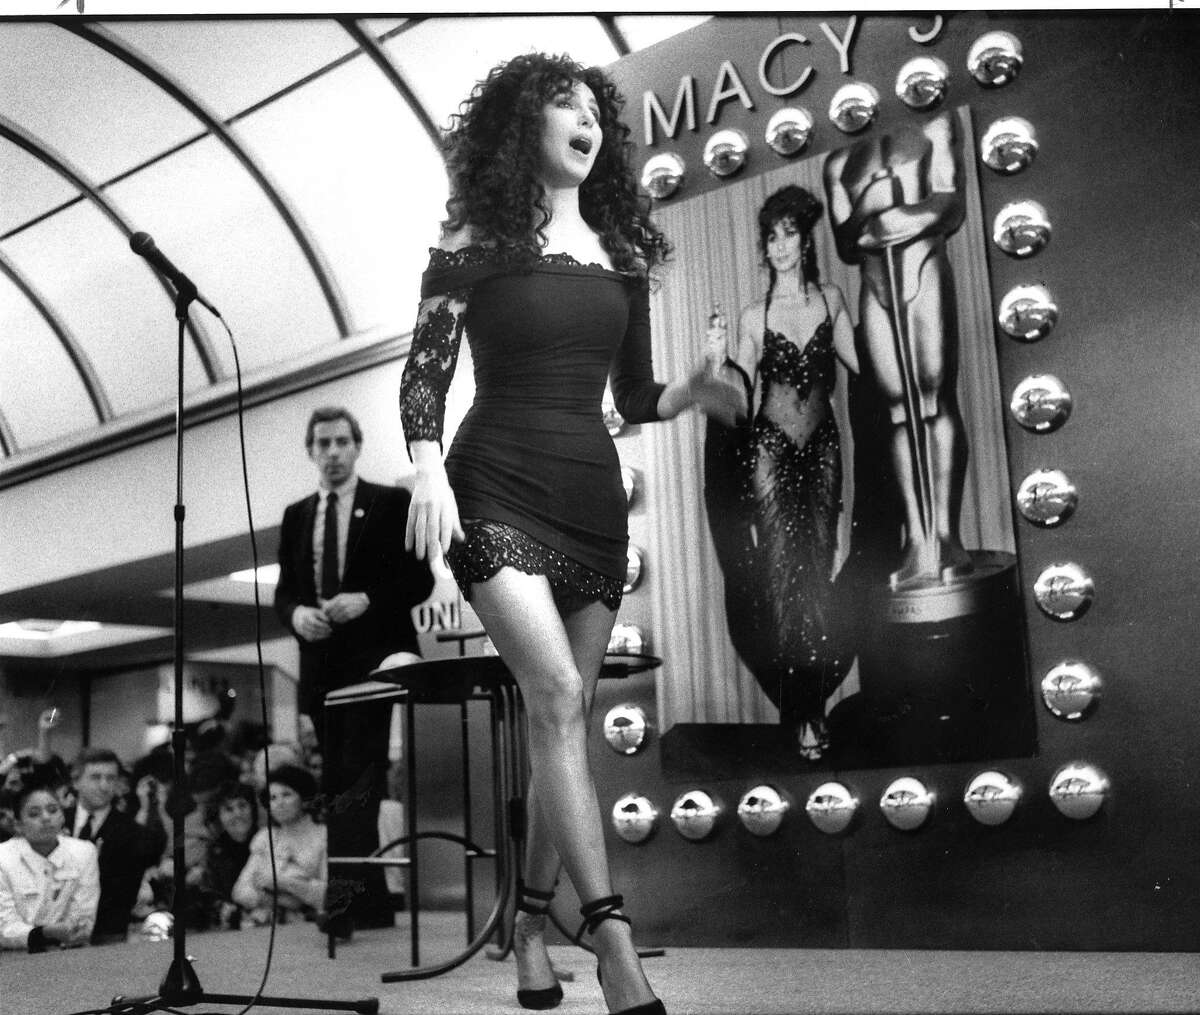 Singer Cher, puts in an appearance at Macy's drawing a huge crowd. November 15, 1988 Photo ran 11/16/1988, P. B5 (batch 1)